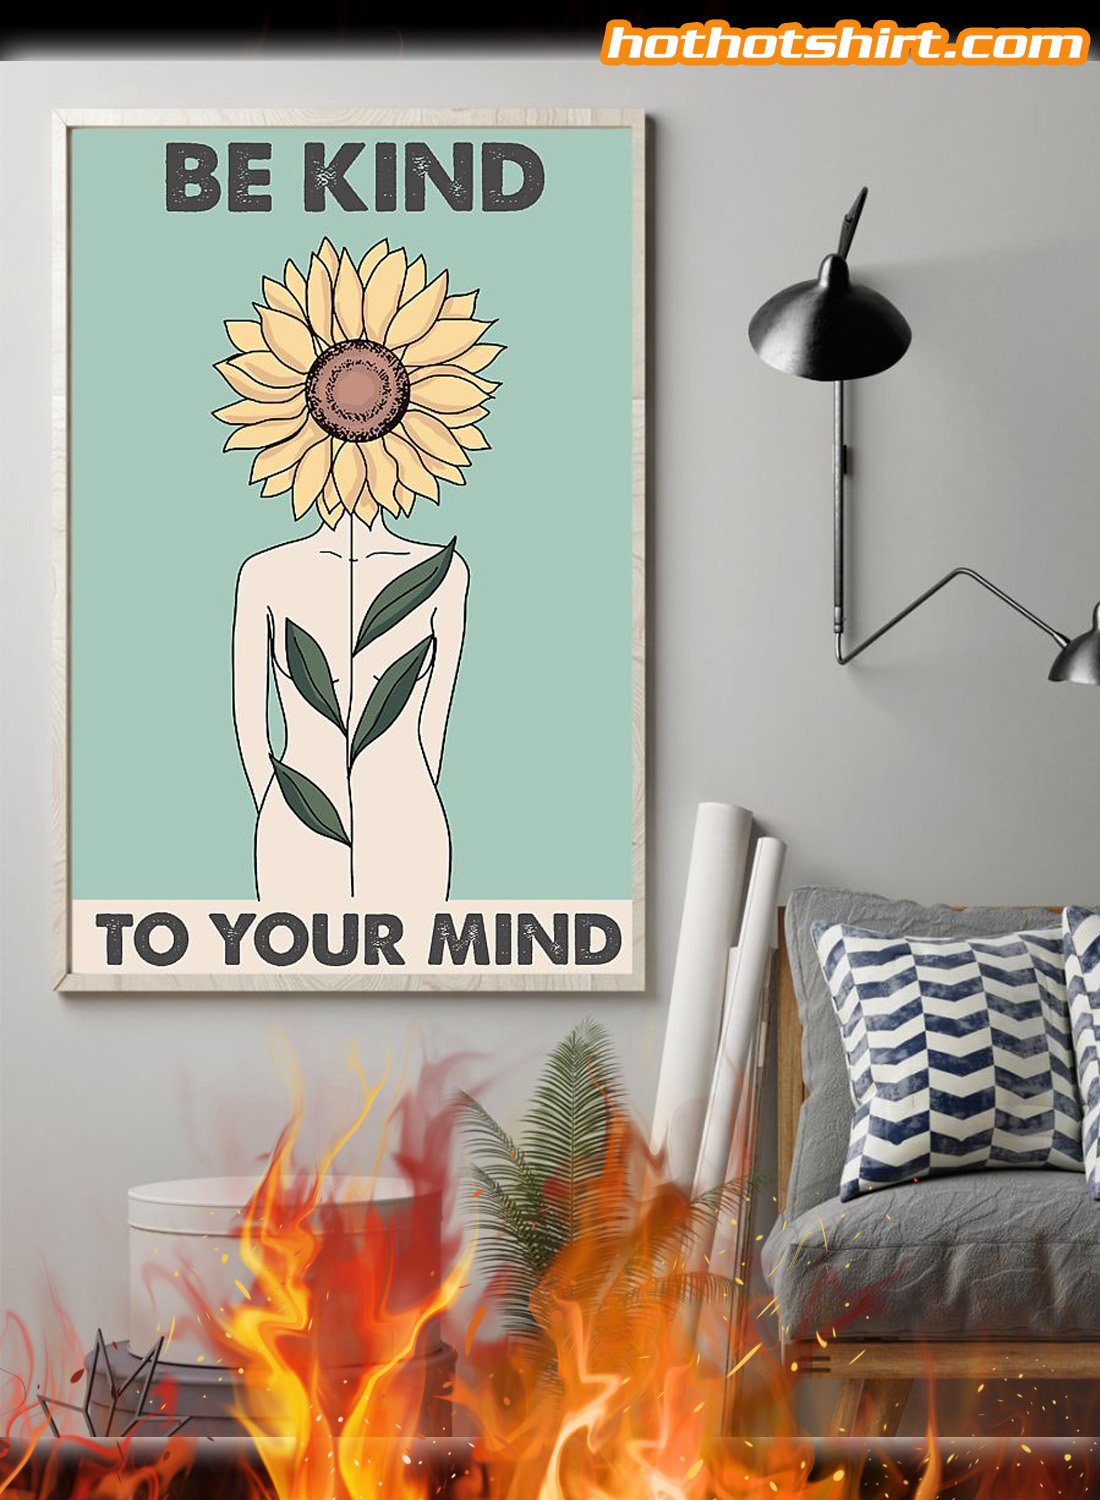 Sunflower Be kind to your mind poster 1